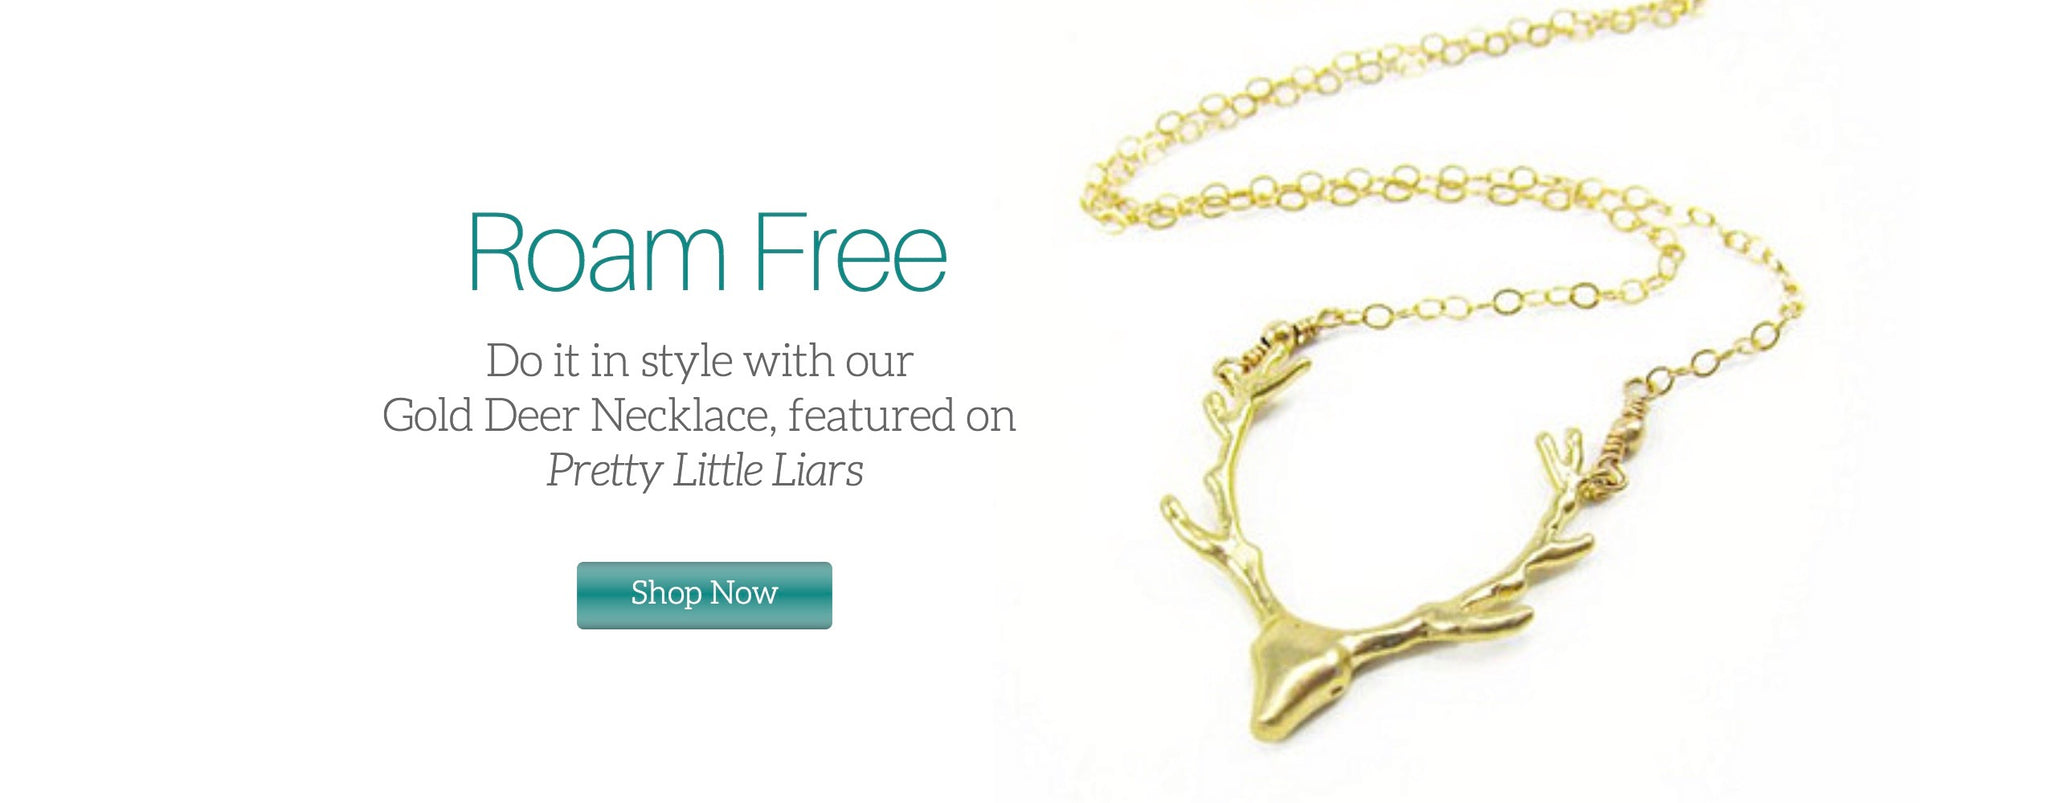 Deer Necklace Featured on Pretty Little Liars Image